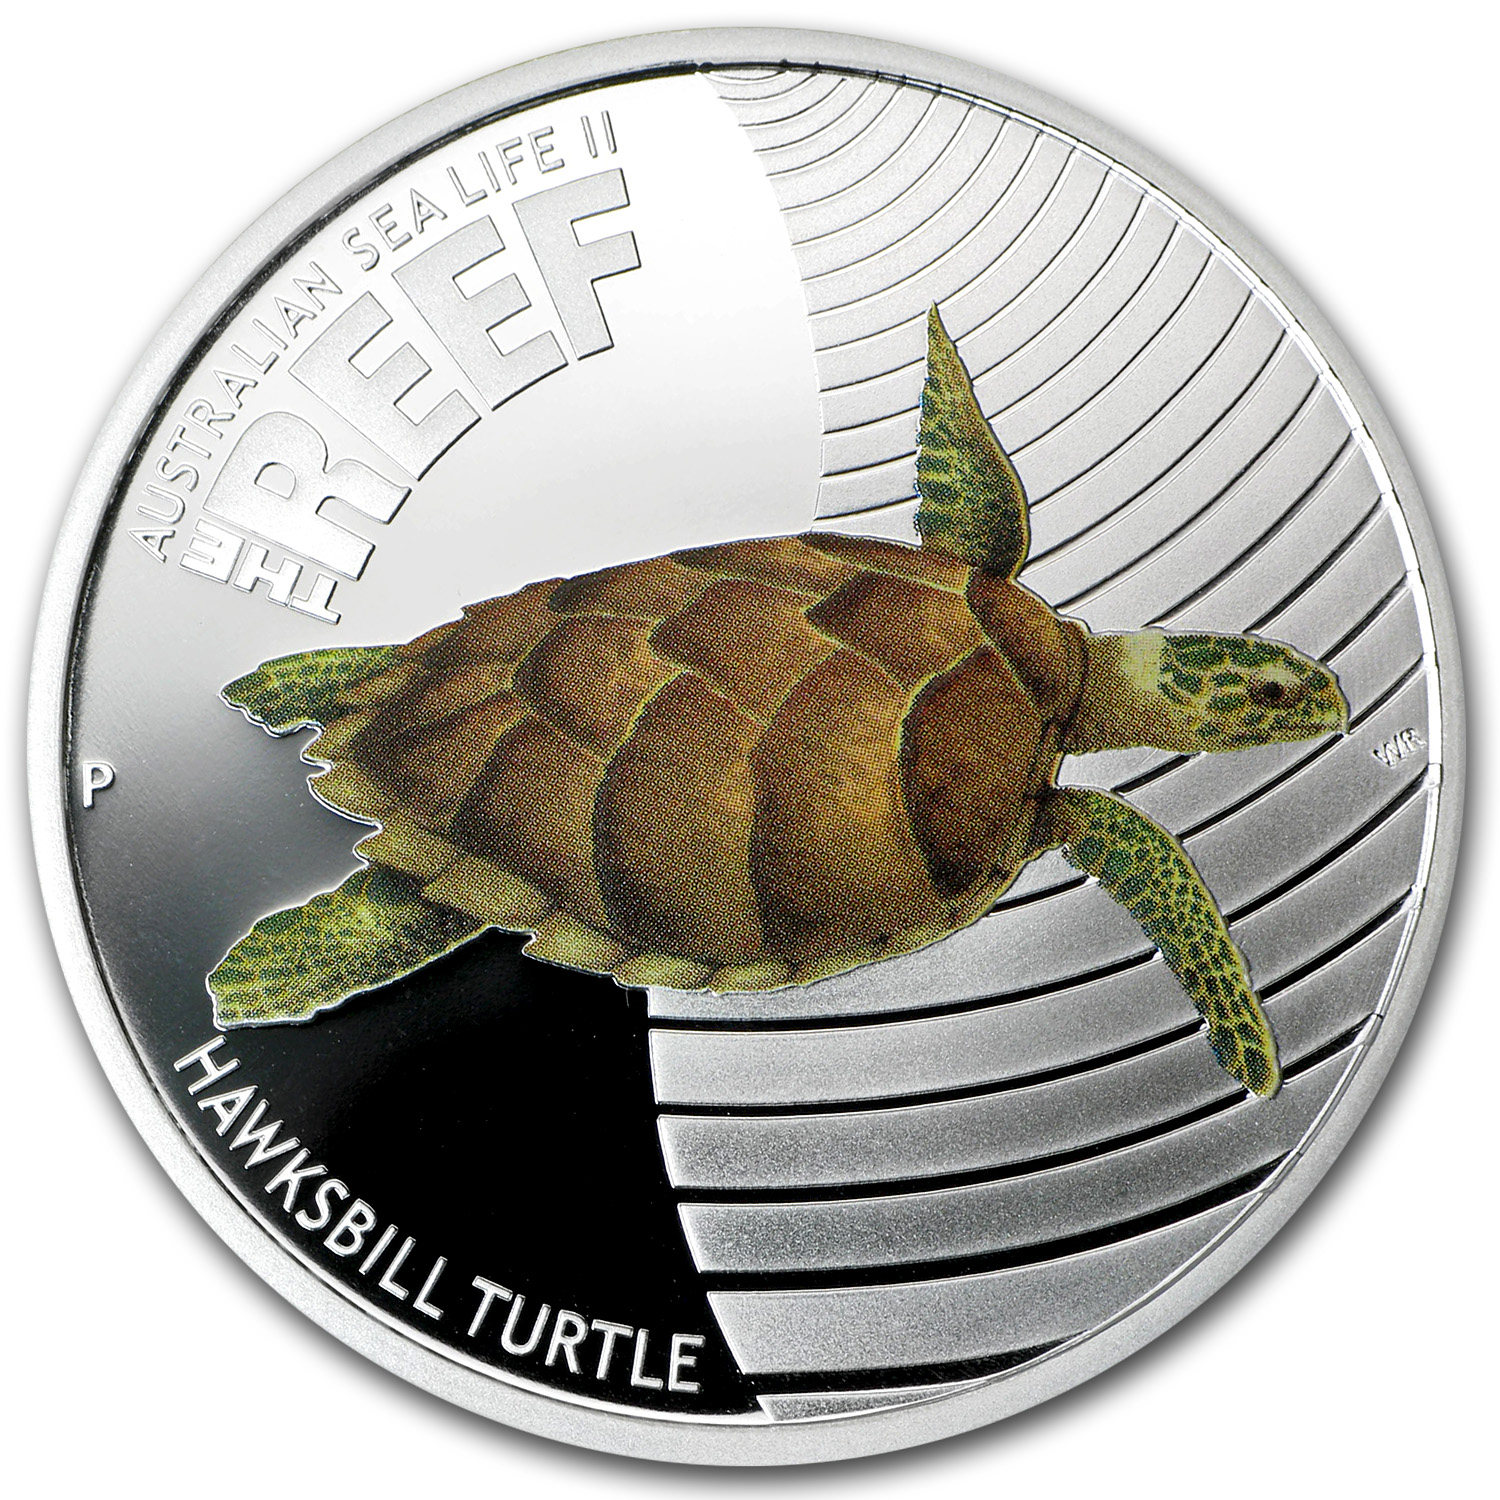 2011 Australia 1/2 oz Silver Hawksbill Turtle Proof